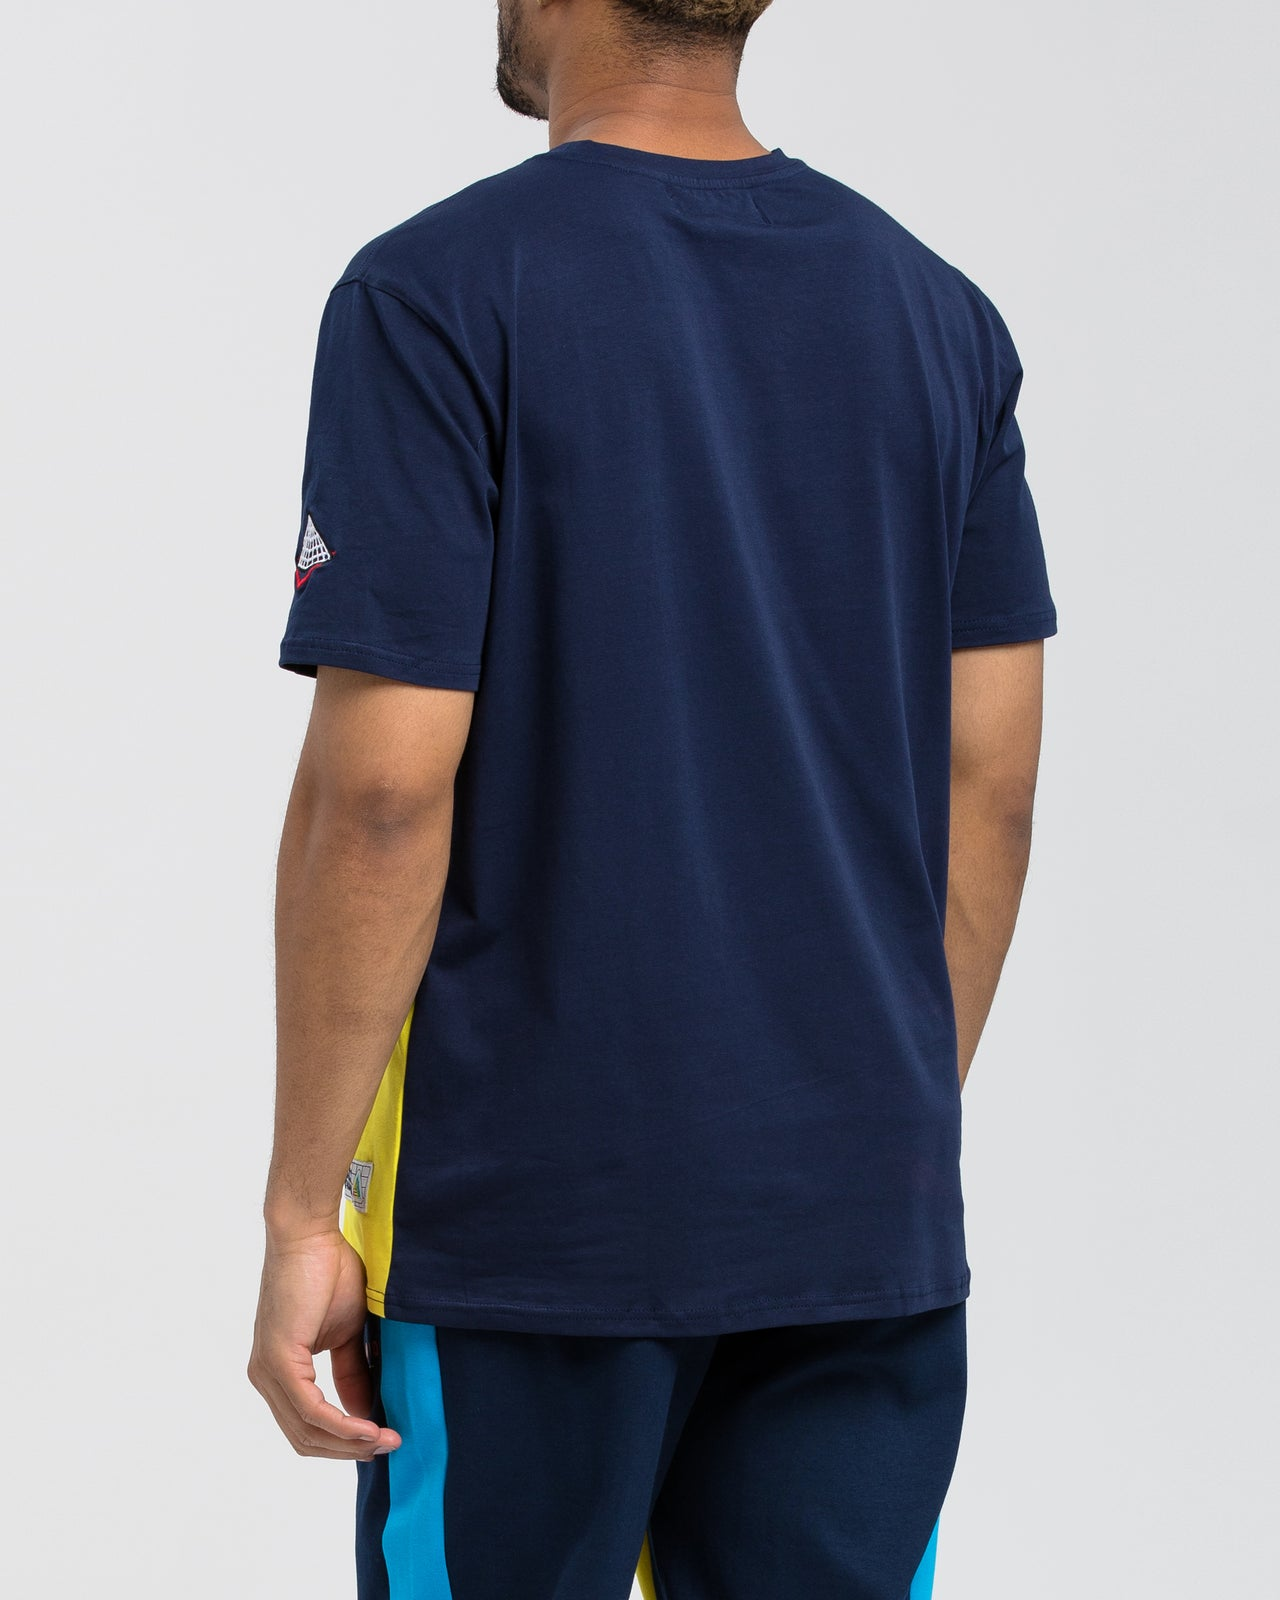 BP Athletic Color Tee - Color: Navy | Blue